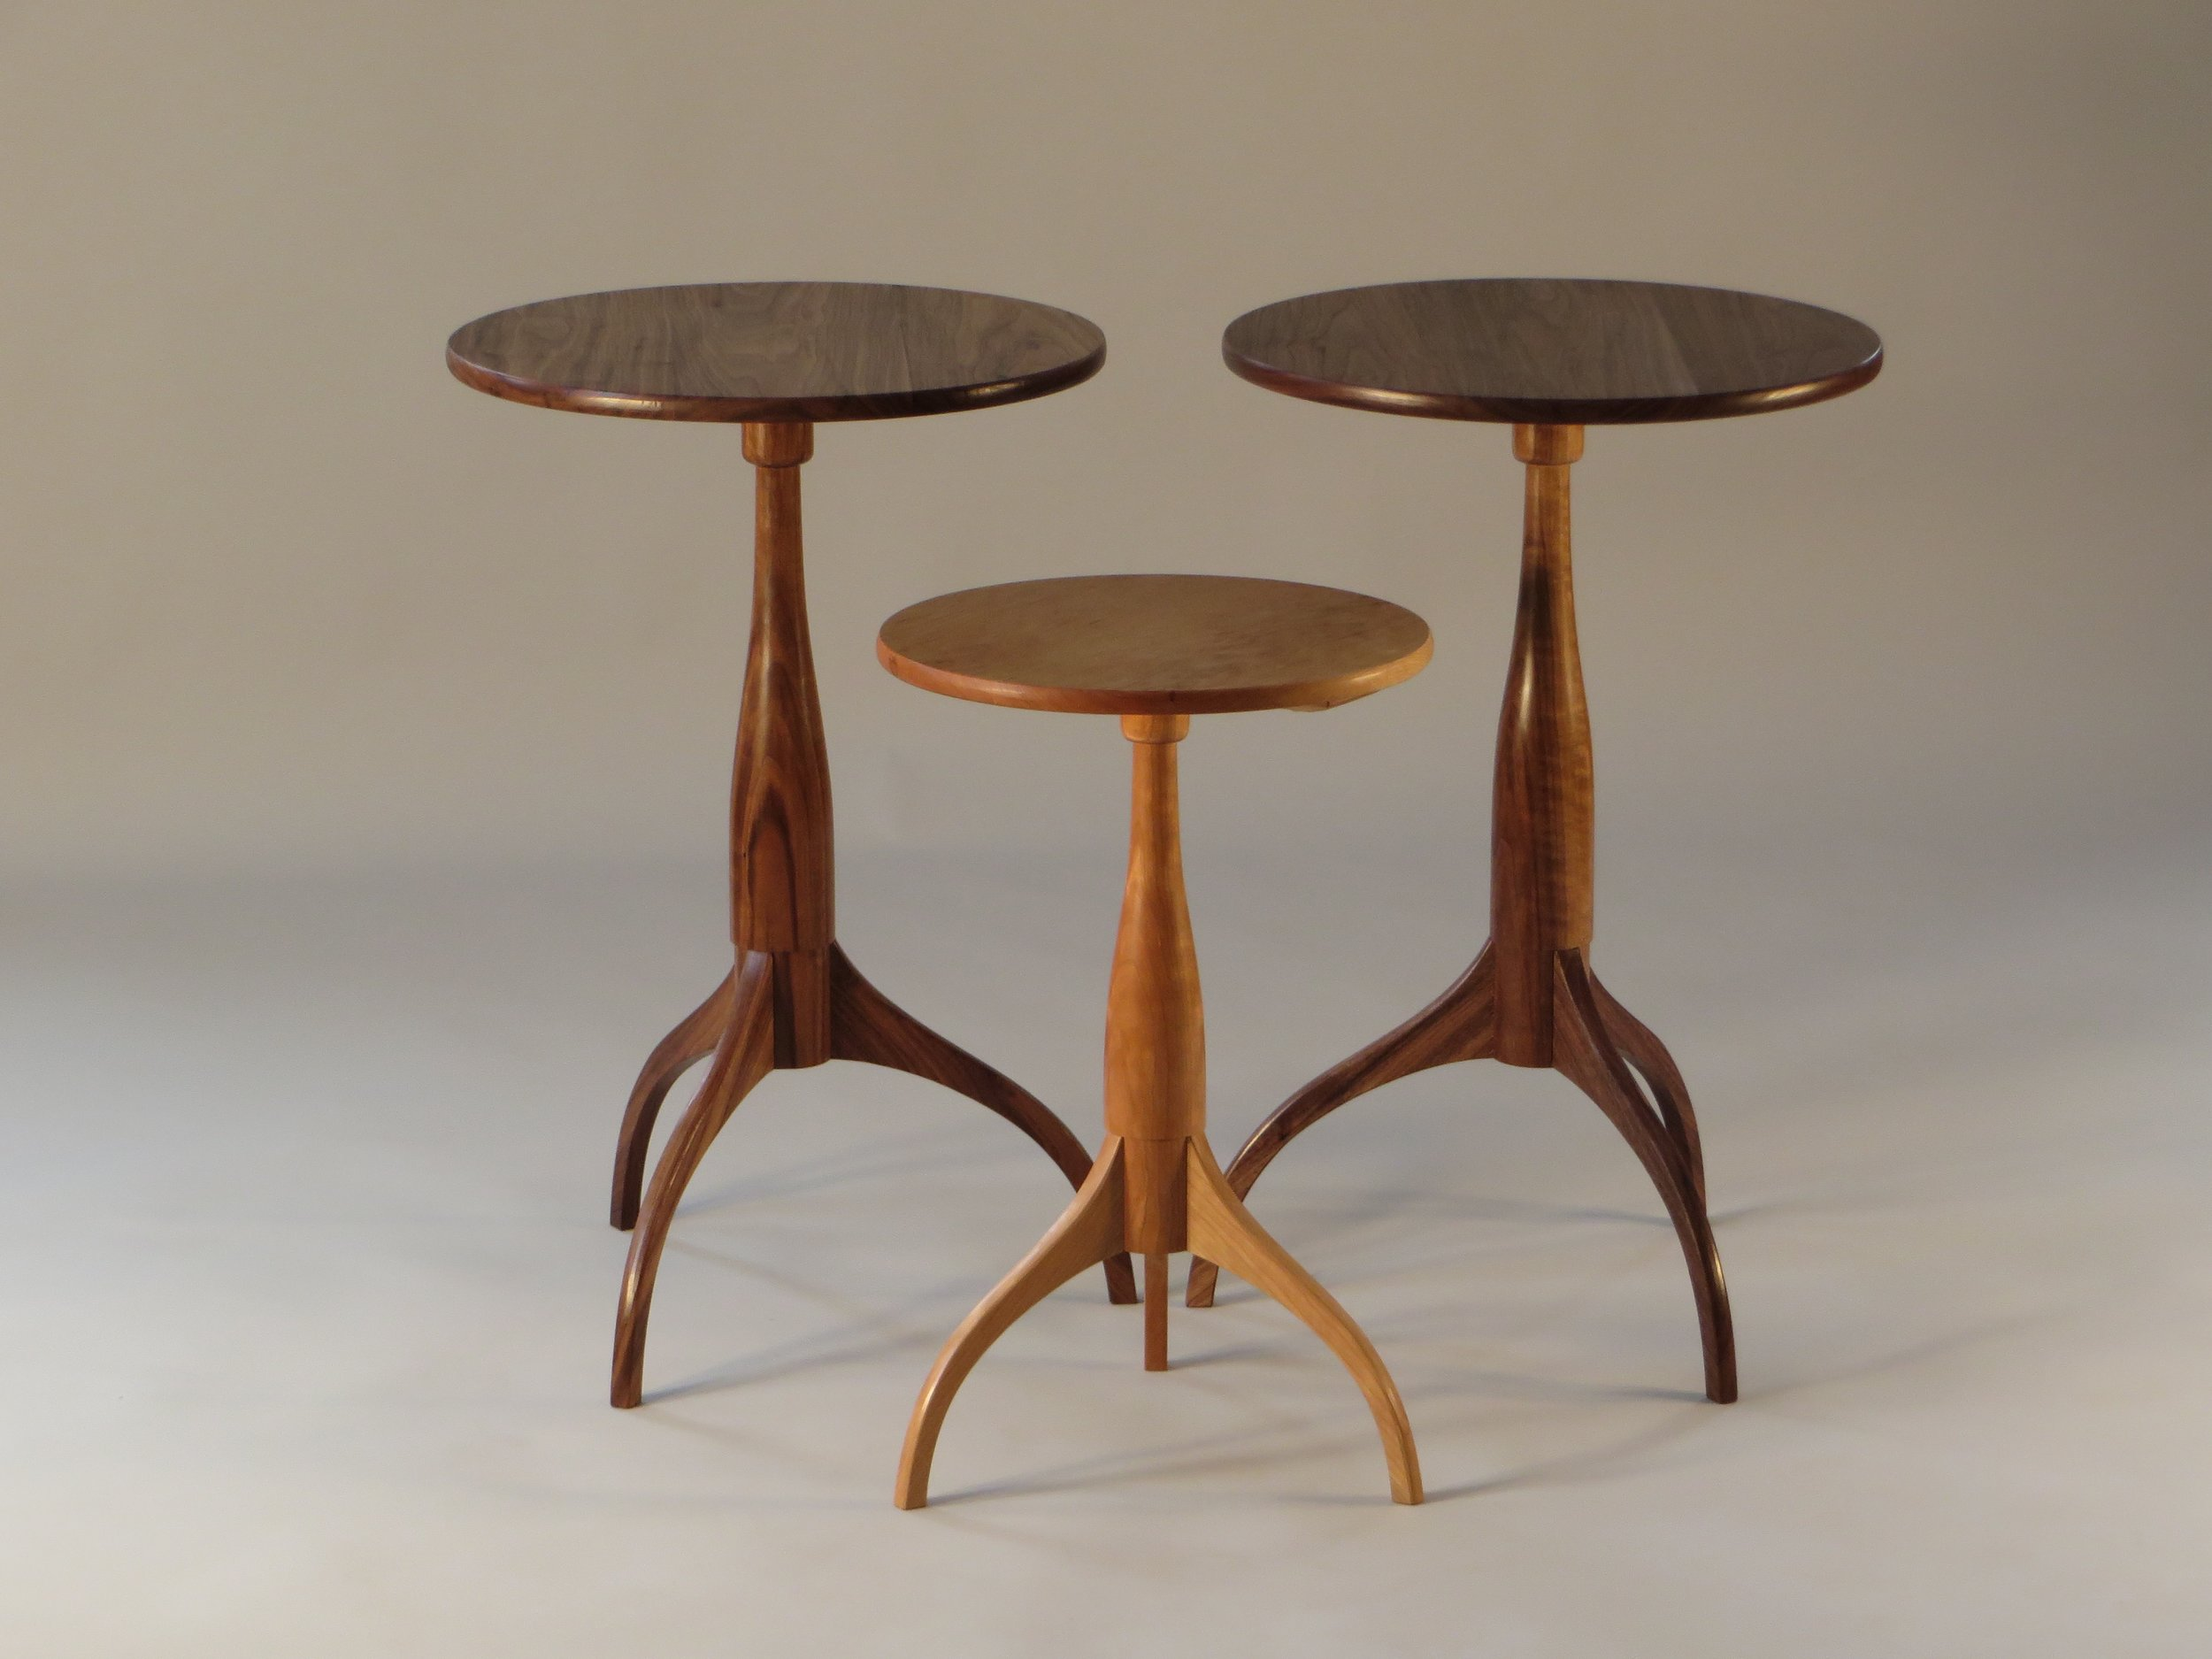 Small Shaker Tables, Walnut and Cherry.   Trio of the classic Shaker round stand: simple, elegant, functional.